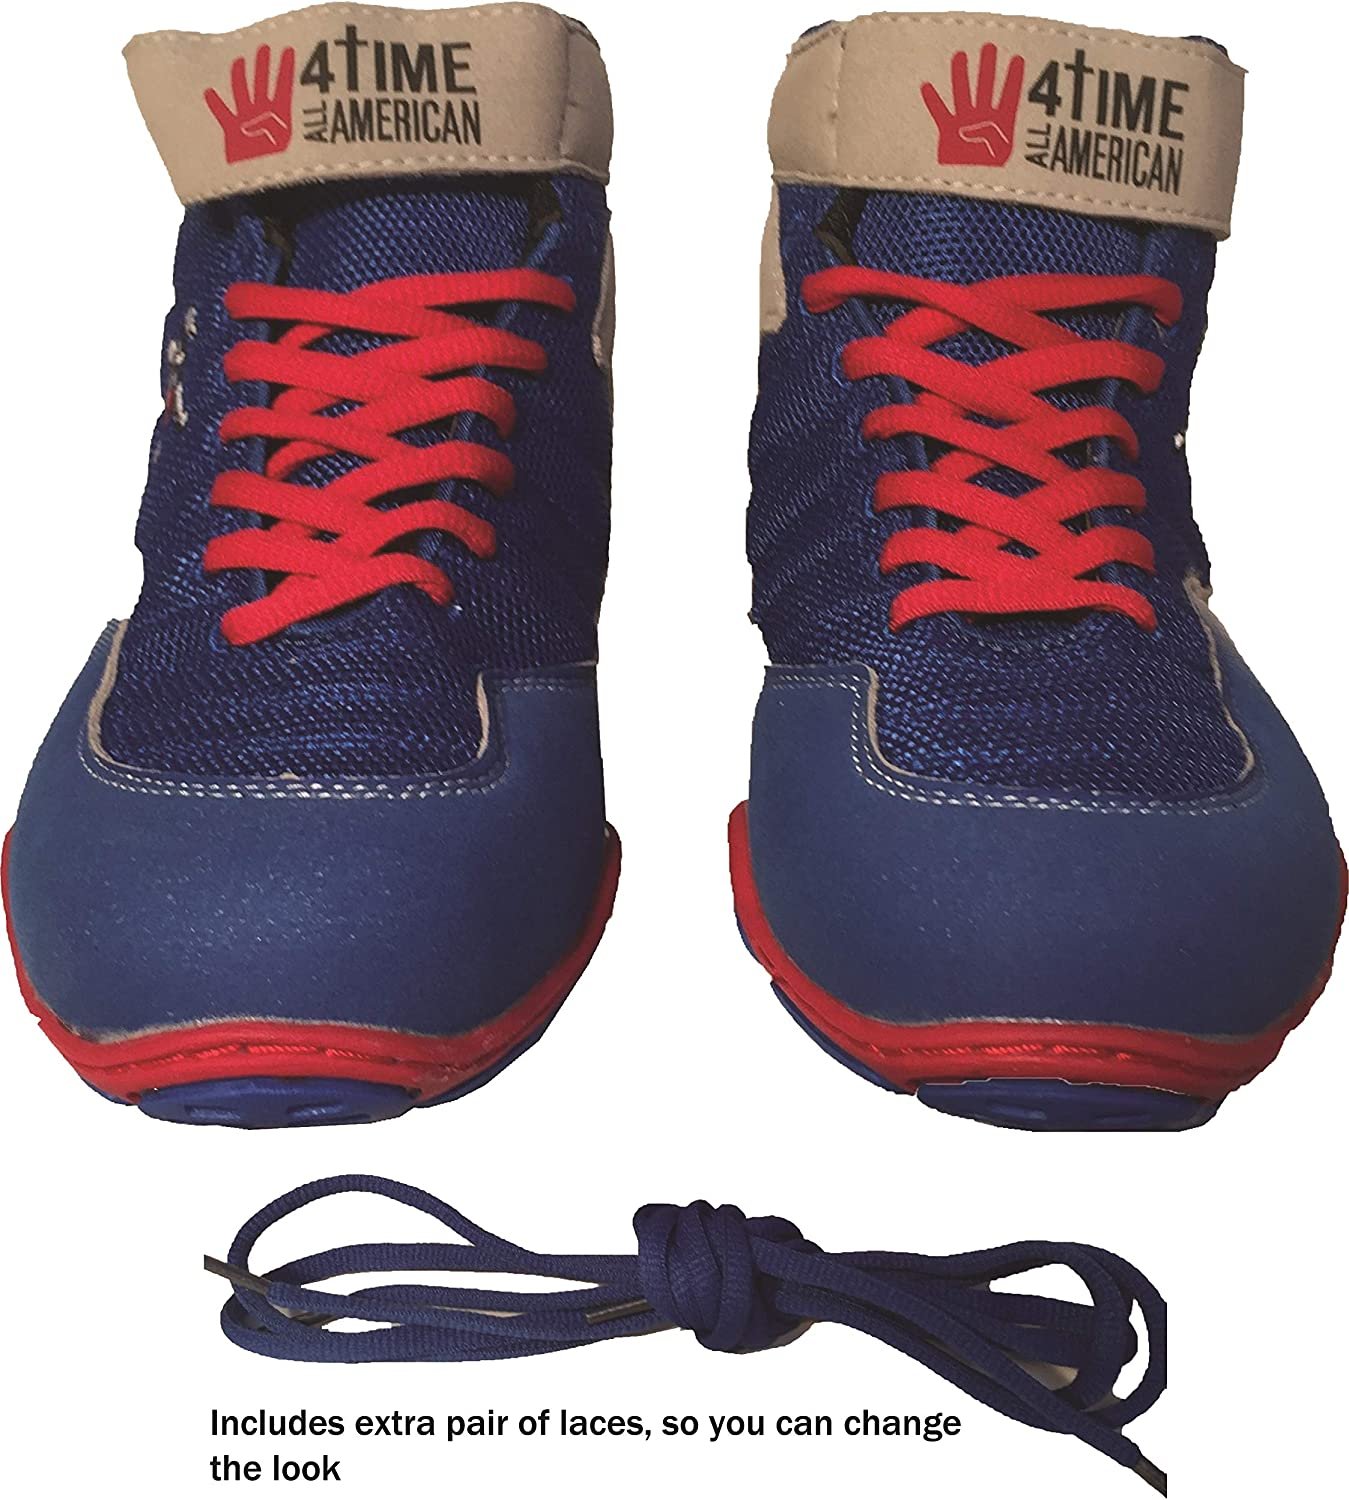 Blue Wrestling Shoes Size 1 4 Time All American The Patriot